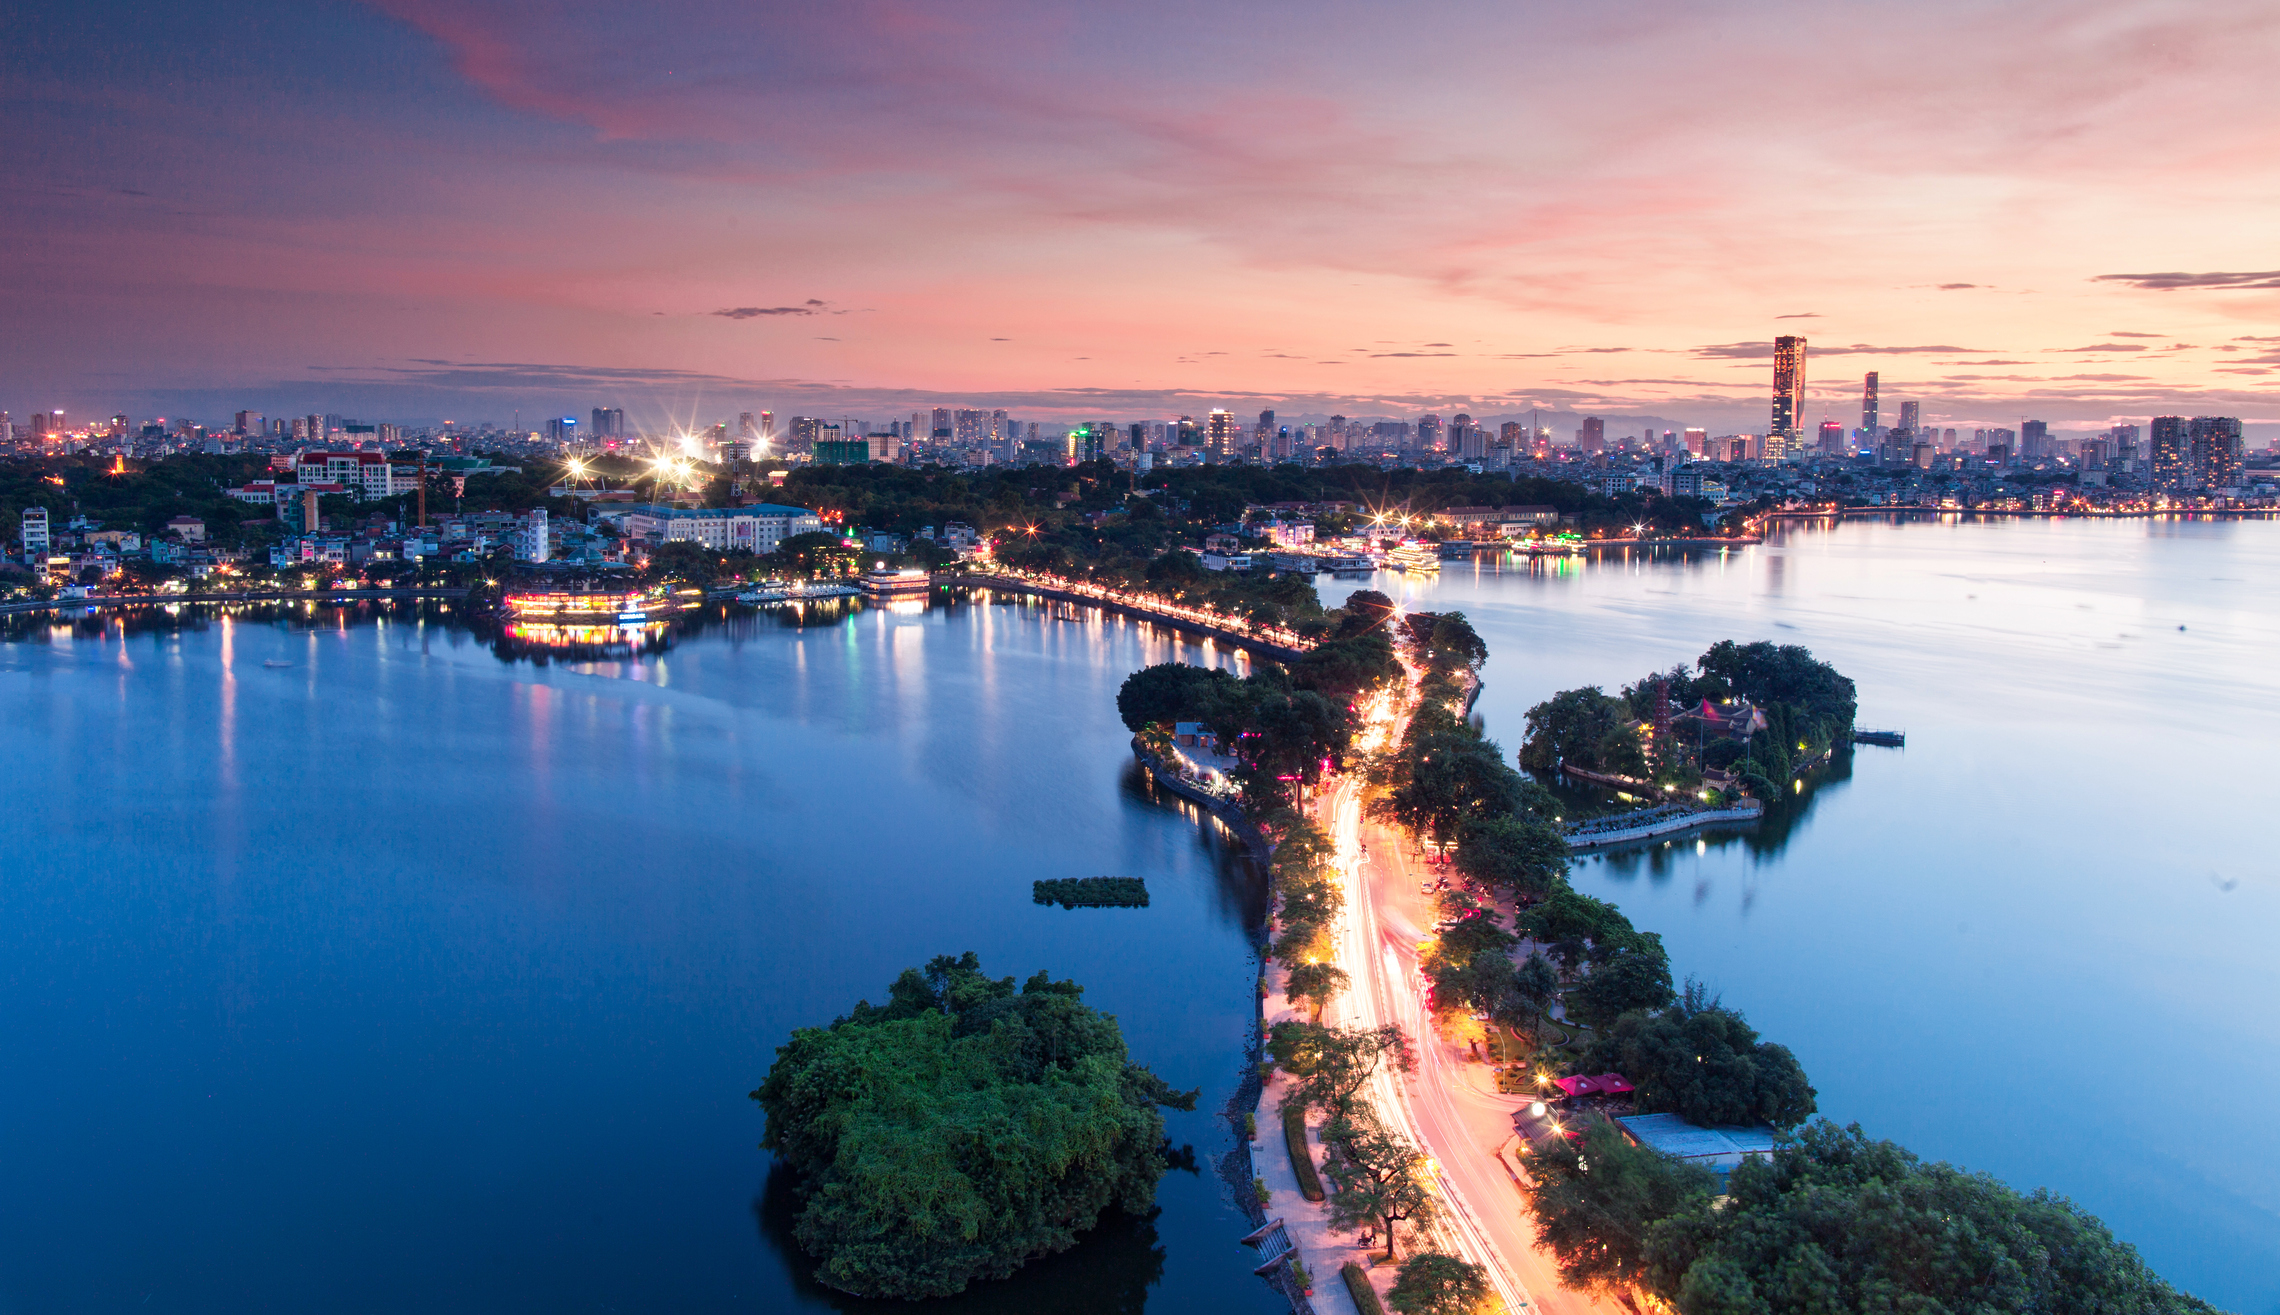 Hilton and brg group plan dual-branded hotel for hanoi, vietnam with Victory Hotel